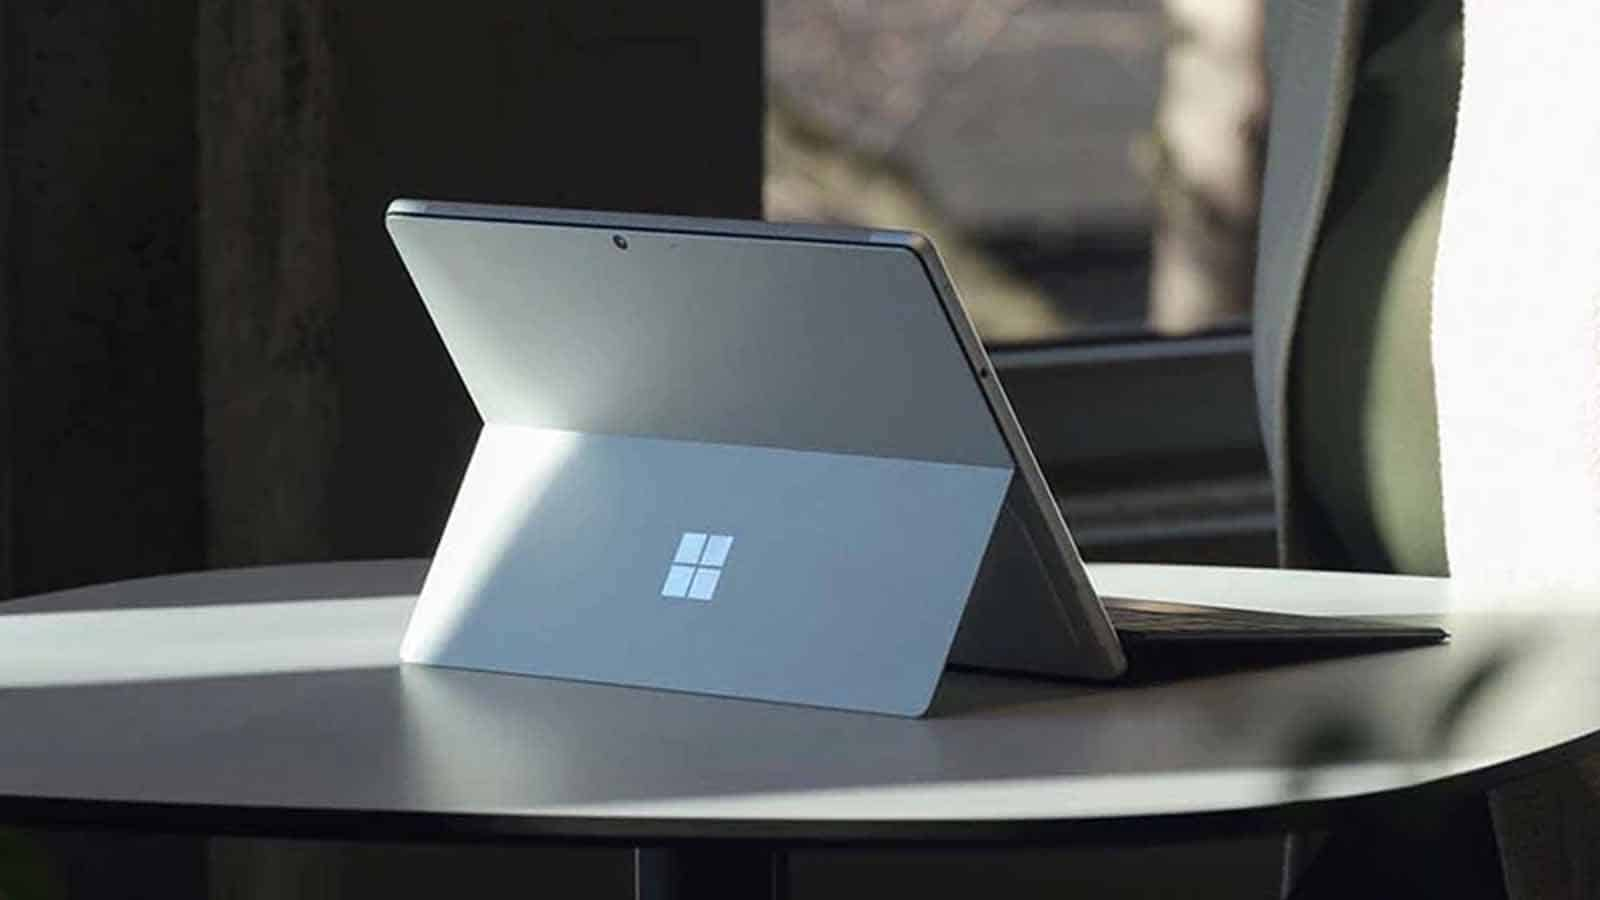 microsoft surface pro 8 on table